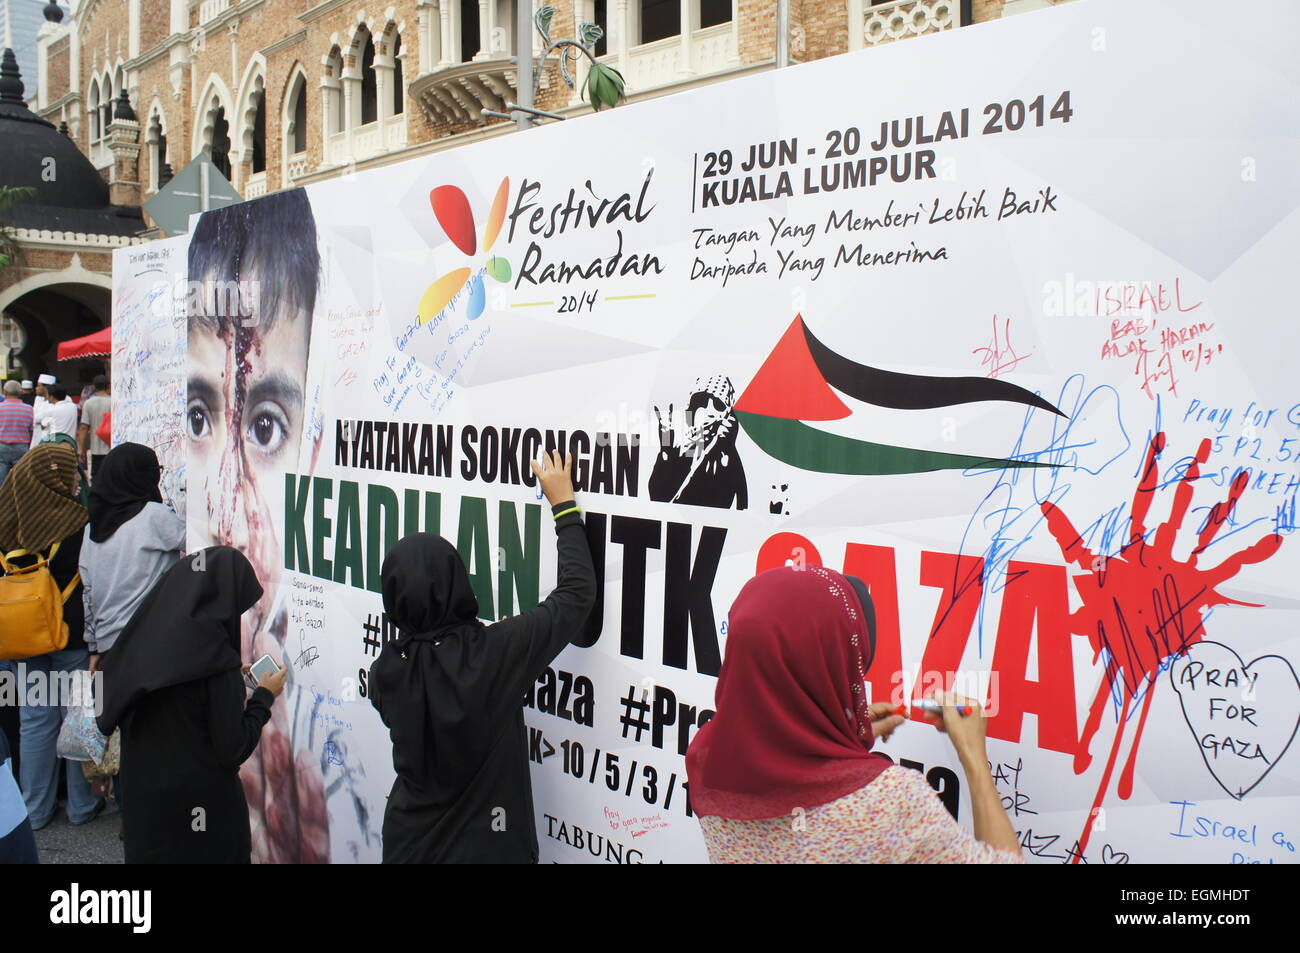 Malaysians signing petition in support of justice for Gaza - Stock Image